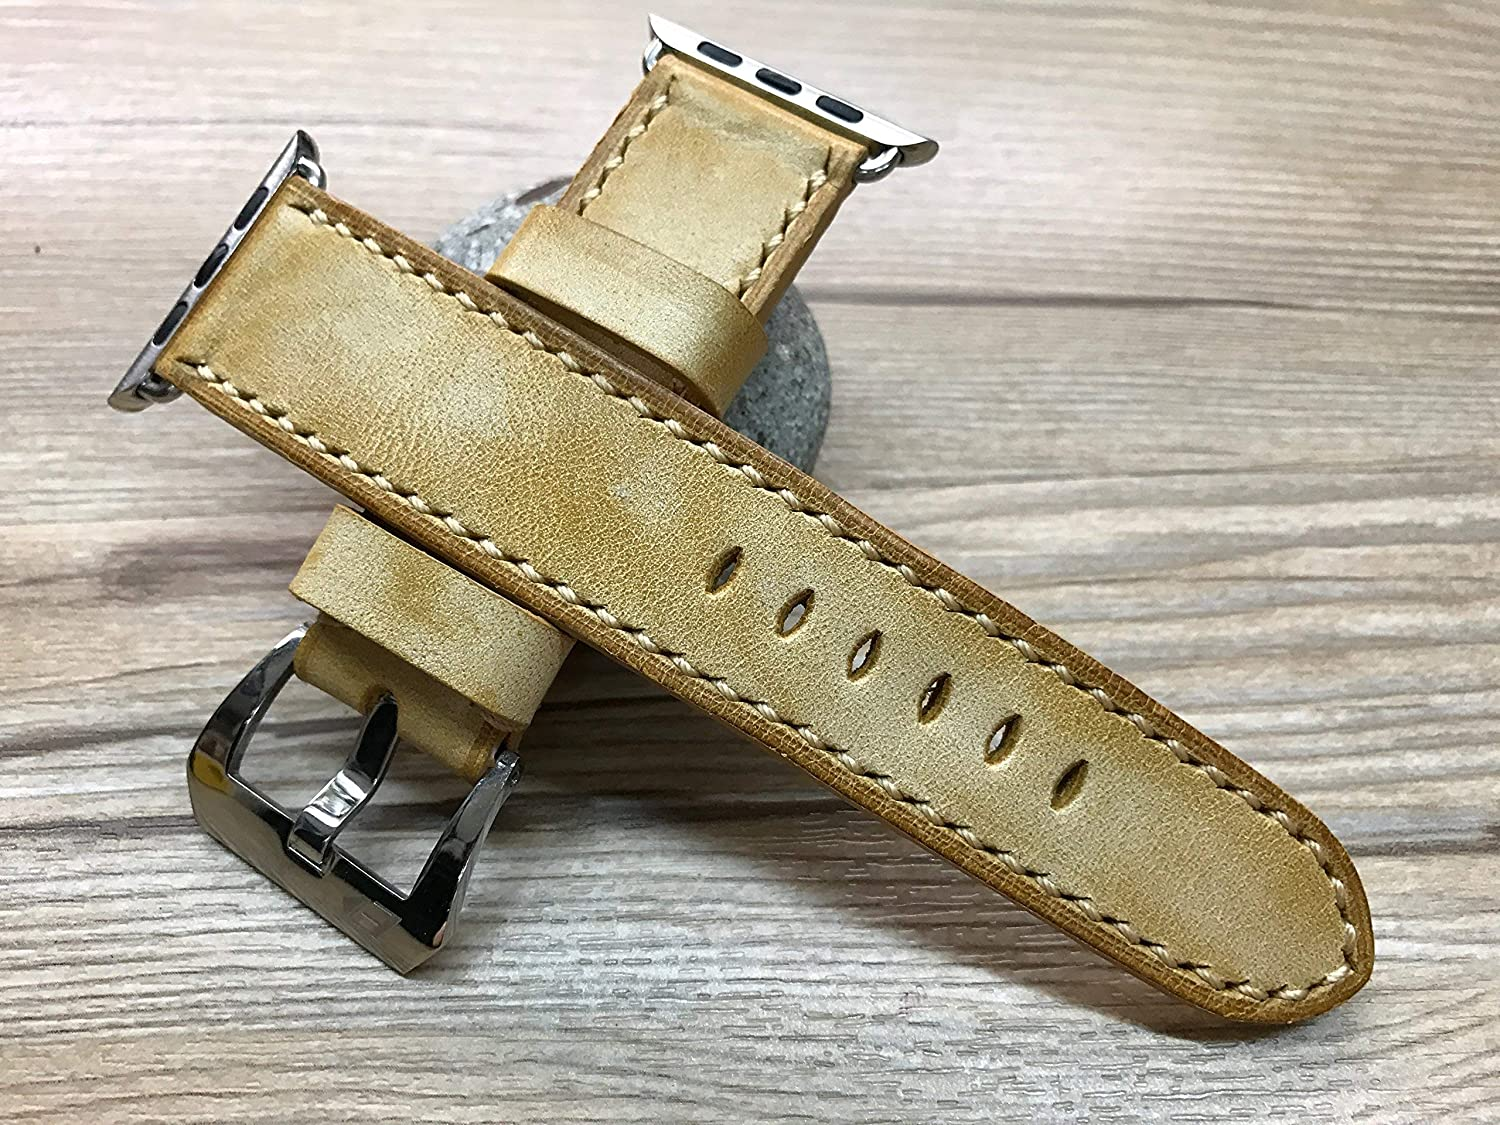 Apple Watch Band, Apple Watch 44mm, Apple Watch 40mm, Apple Watch Space Gray, Stainless Steel Gold, Series 5, Vintage waxed Leather Watch Strap for Apple Watch 38mm & Apple Watch 42mm, iWatch